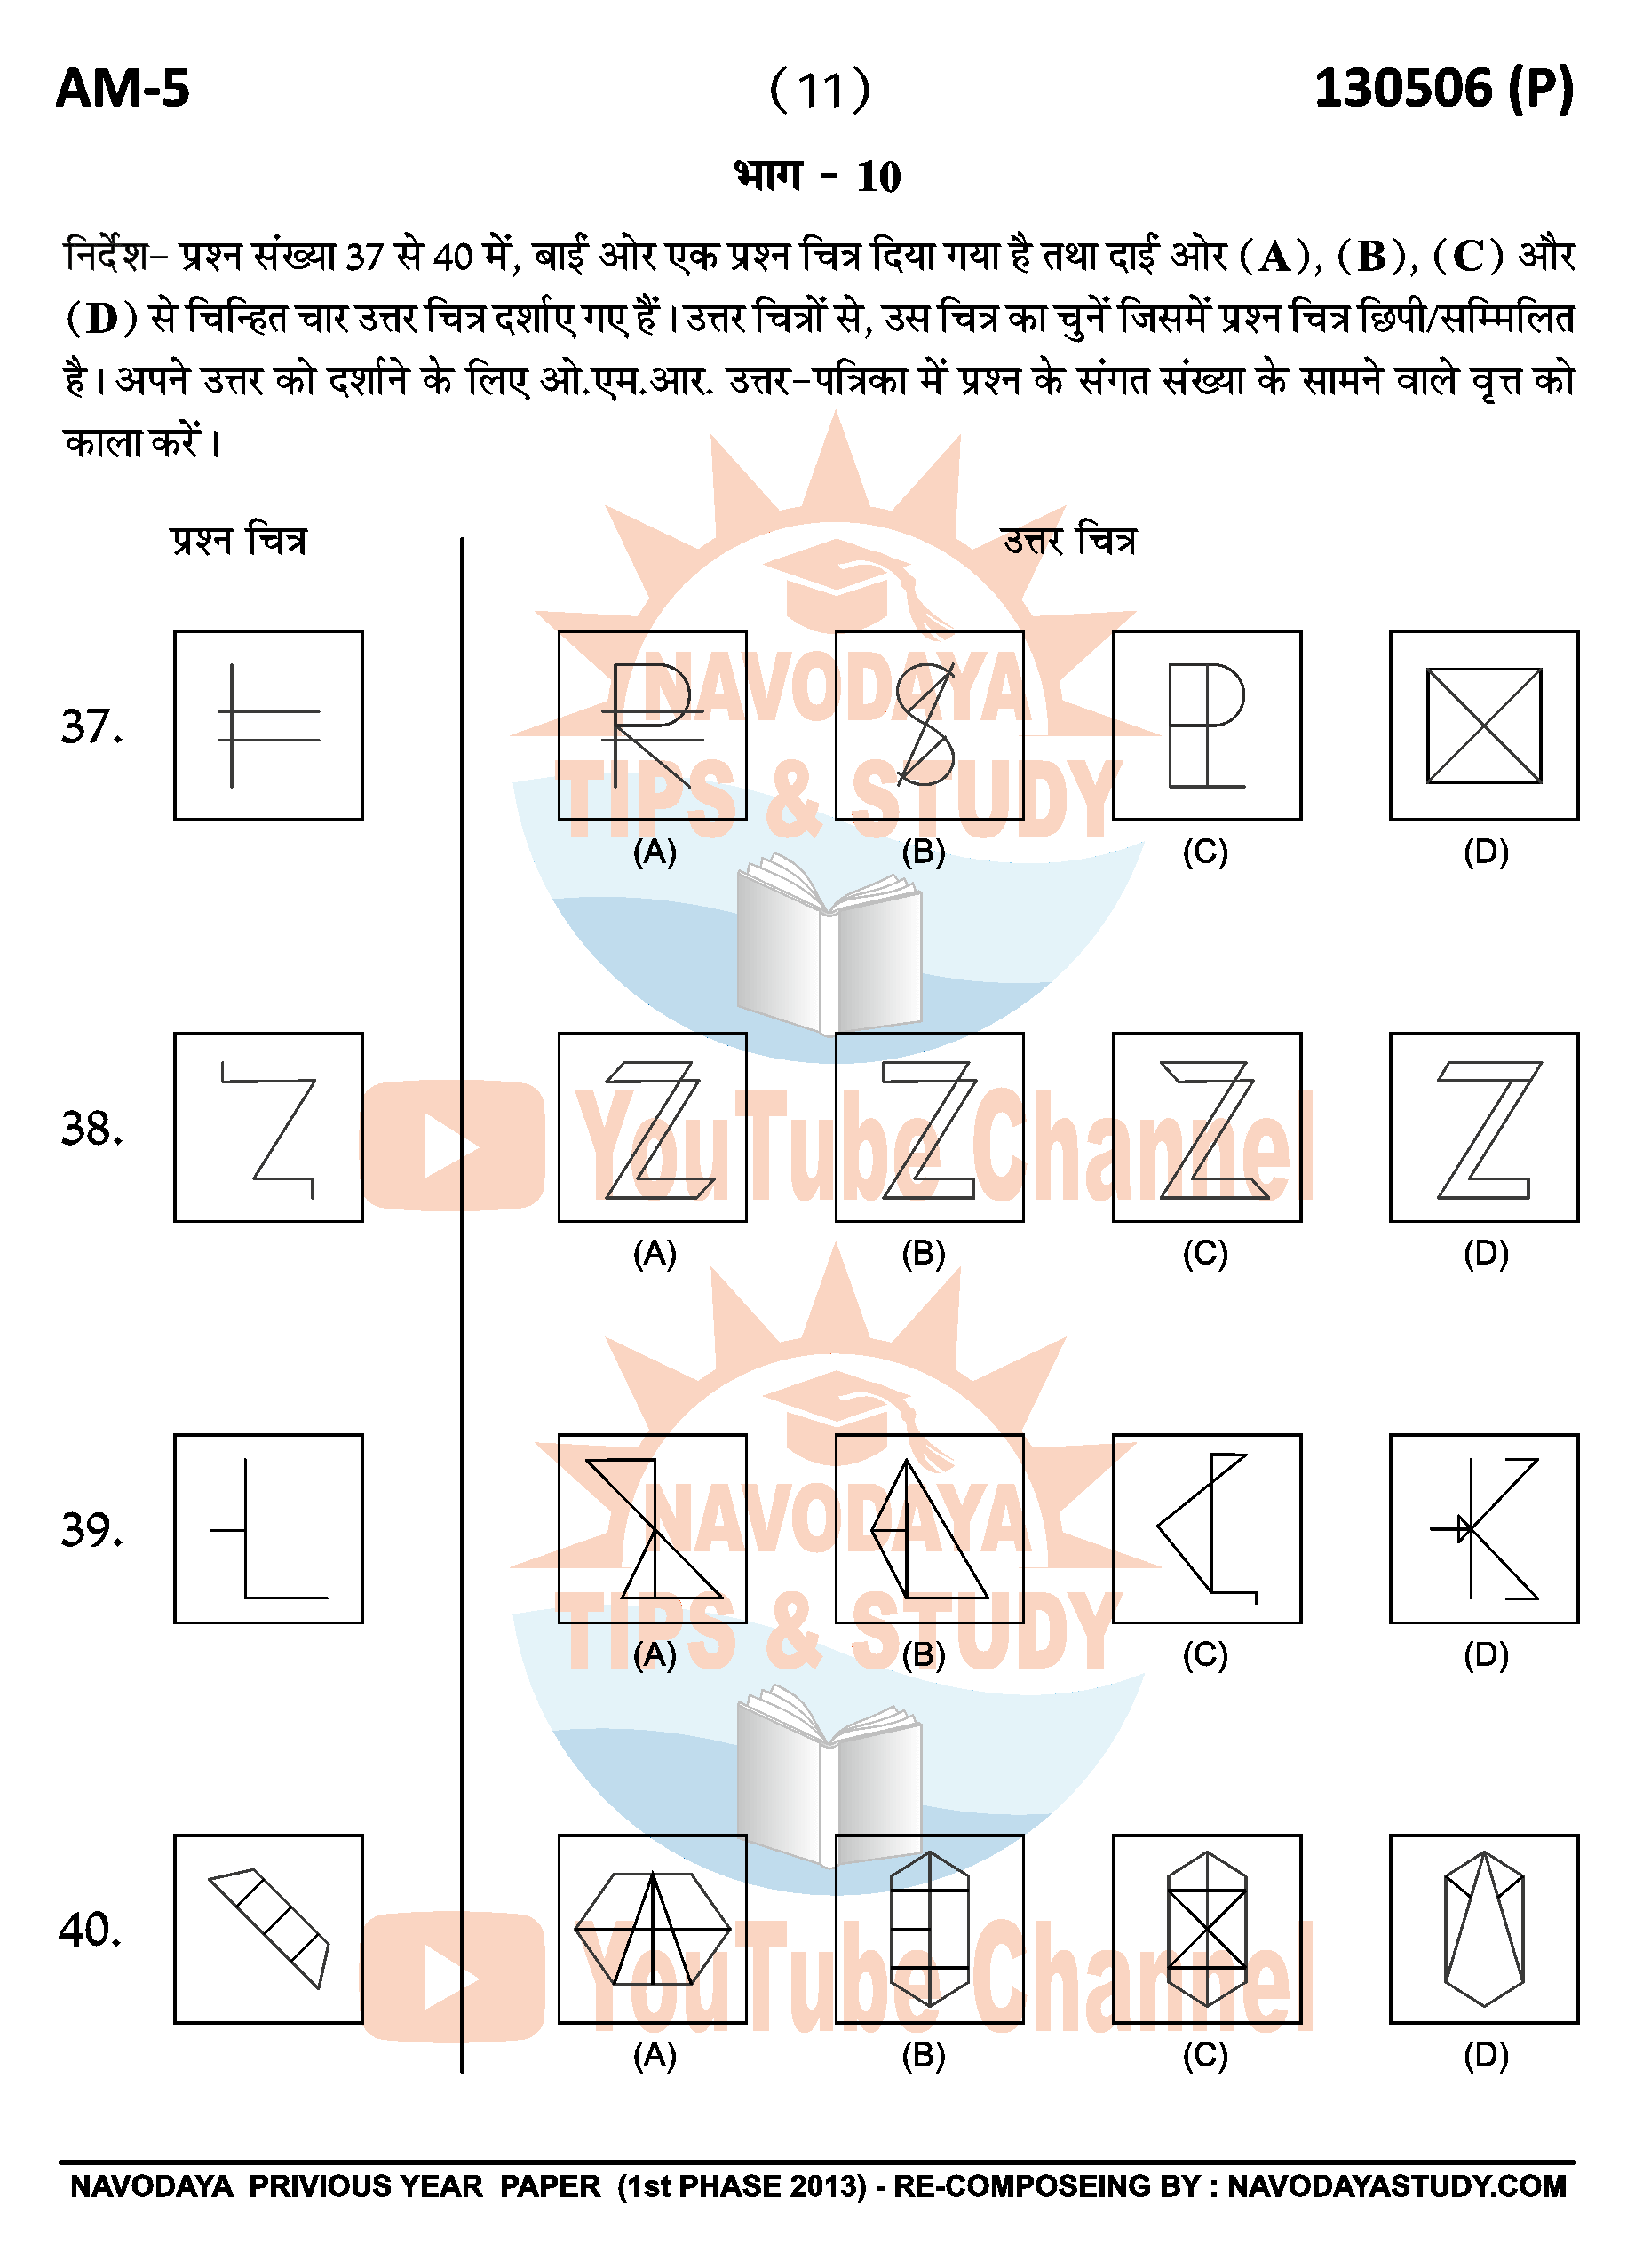 NAVODAYA 2013 AM - 5 HIND OLD YEAR QUESTION PAPER PAGE NO. 11